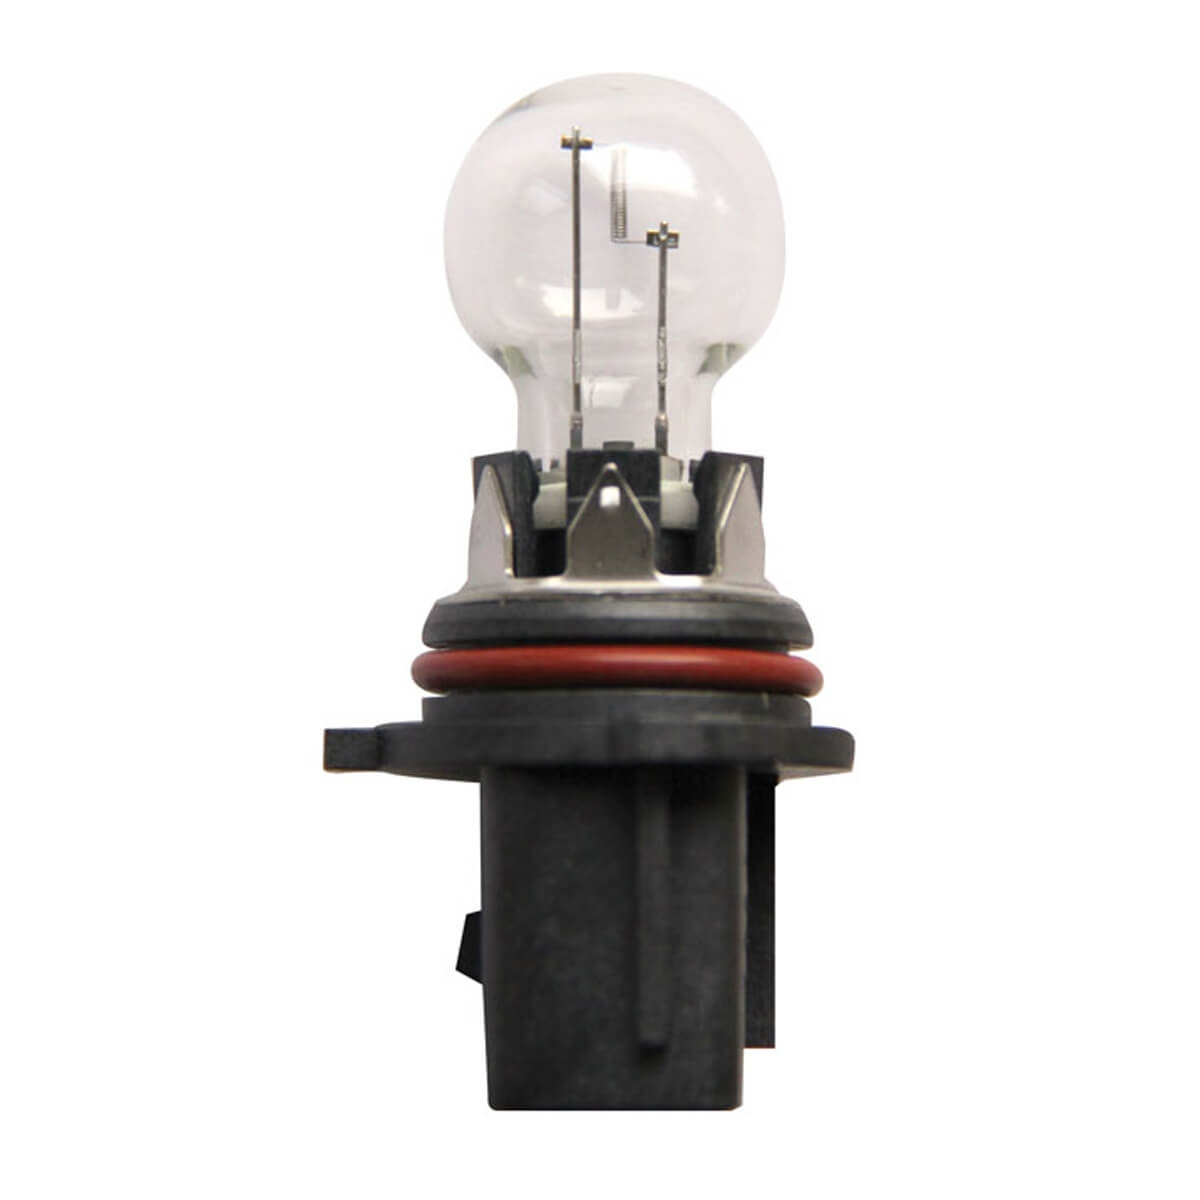 BEDFORD CHEVANNE Daylight Running Bulb